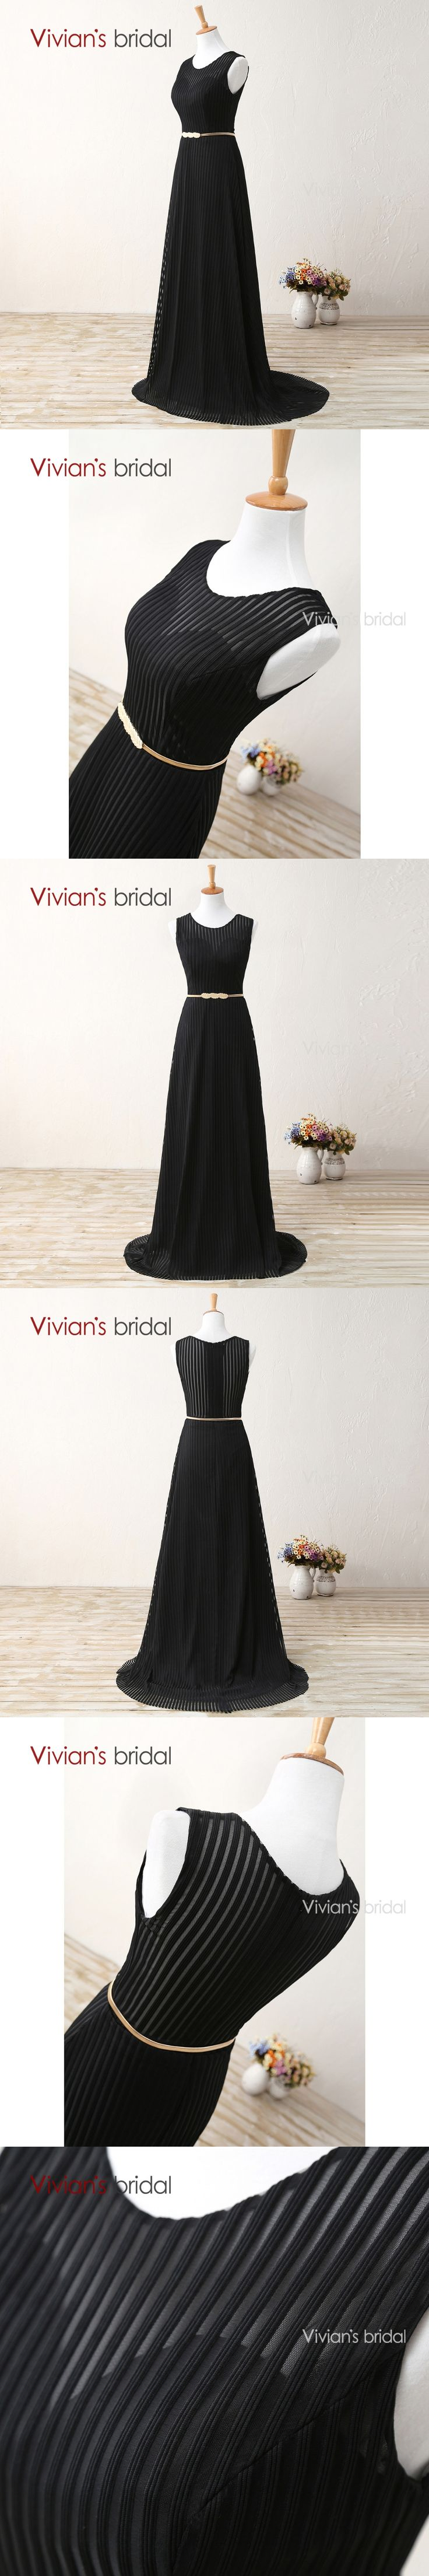 Vivian's Bridal Black Evening Gown See Through Back Striped Lace Formal Long Evening Dresses A Line E2203